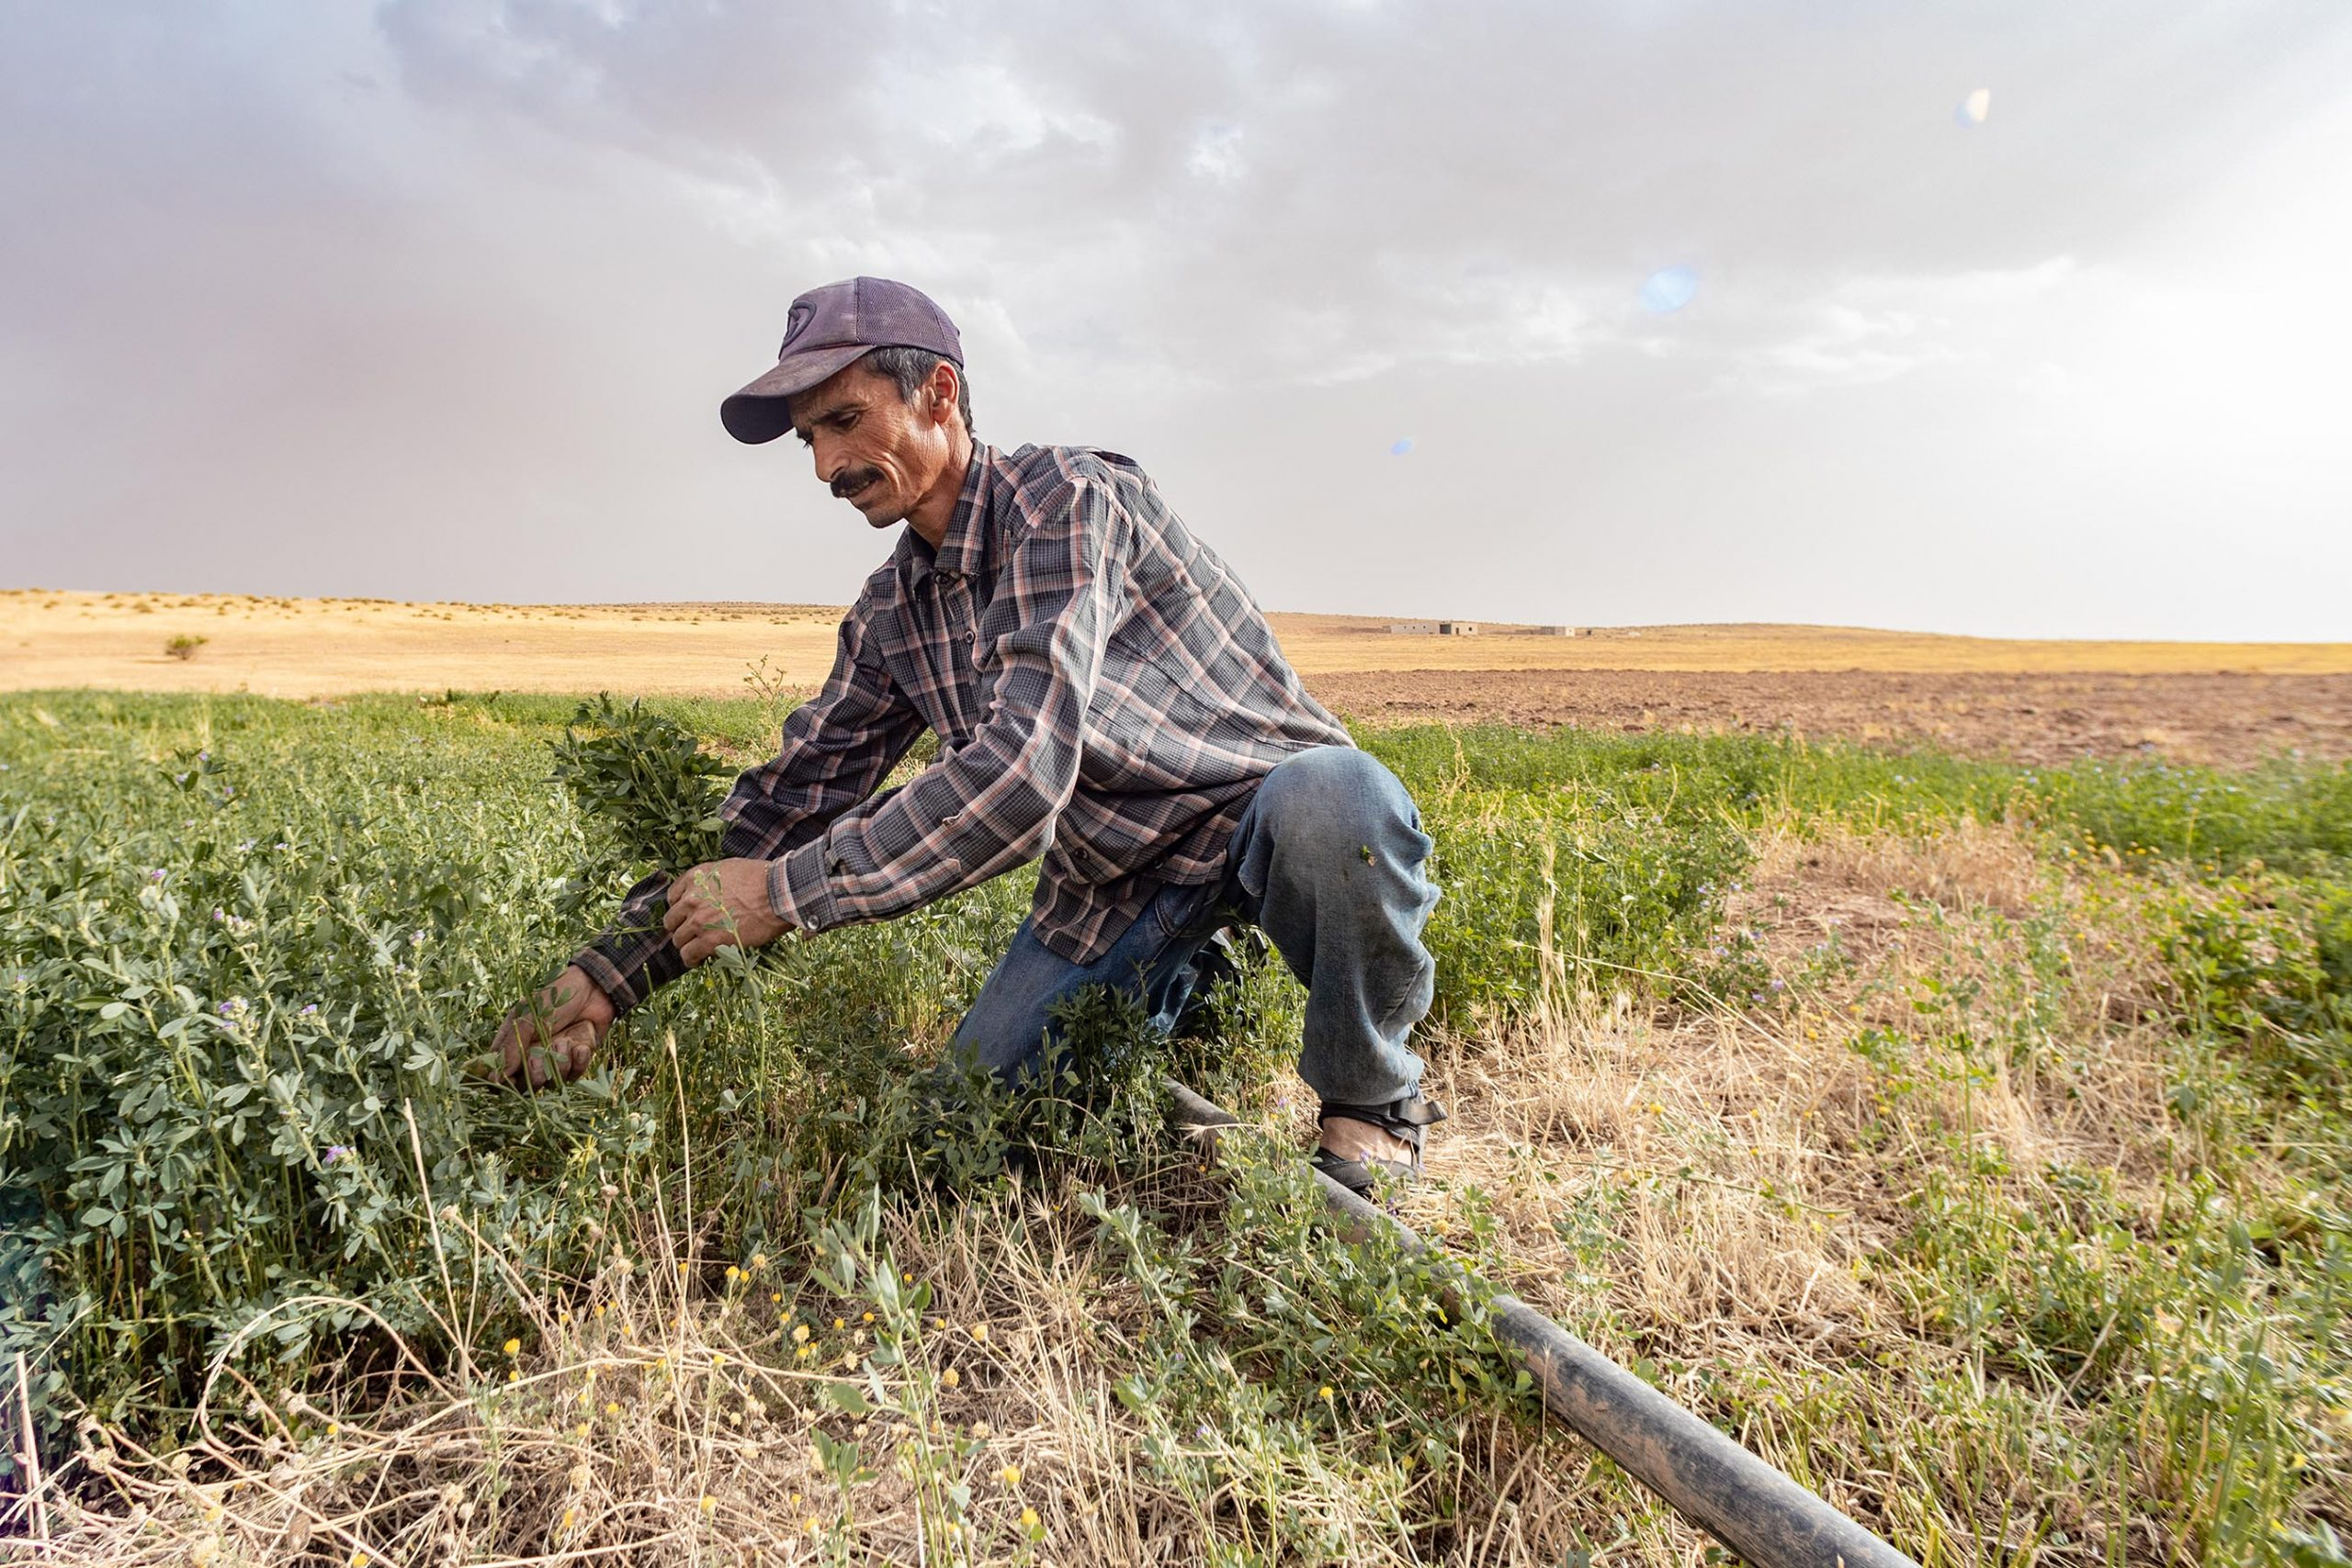 27 June 2020: Abdelkader Dahmoune uses a scythe to cut lucerne. The plant adapts well to arid climates and, harvested every 20 to 25 days, produces efficient yields of fodder for sheep. (Photograph by Abderazak HadjTahar)